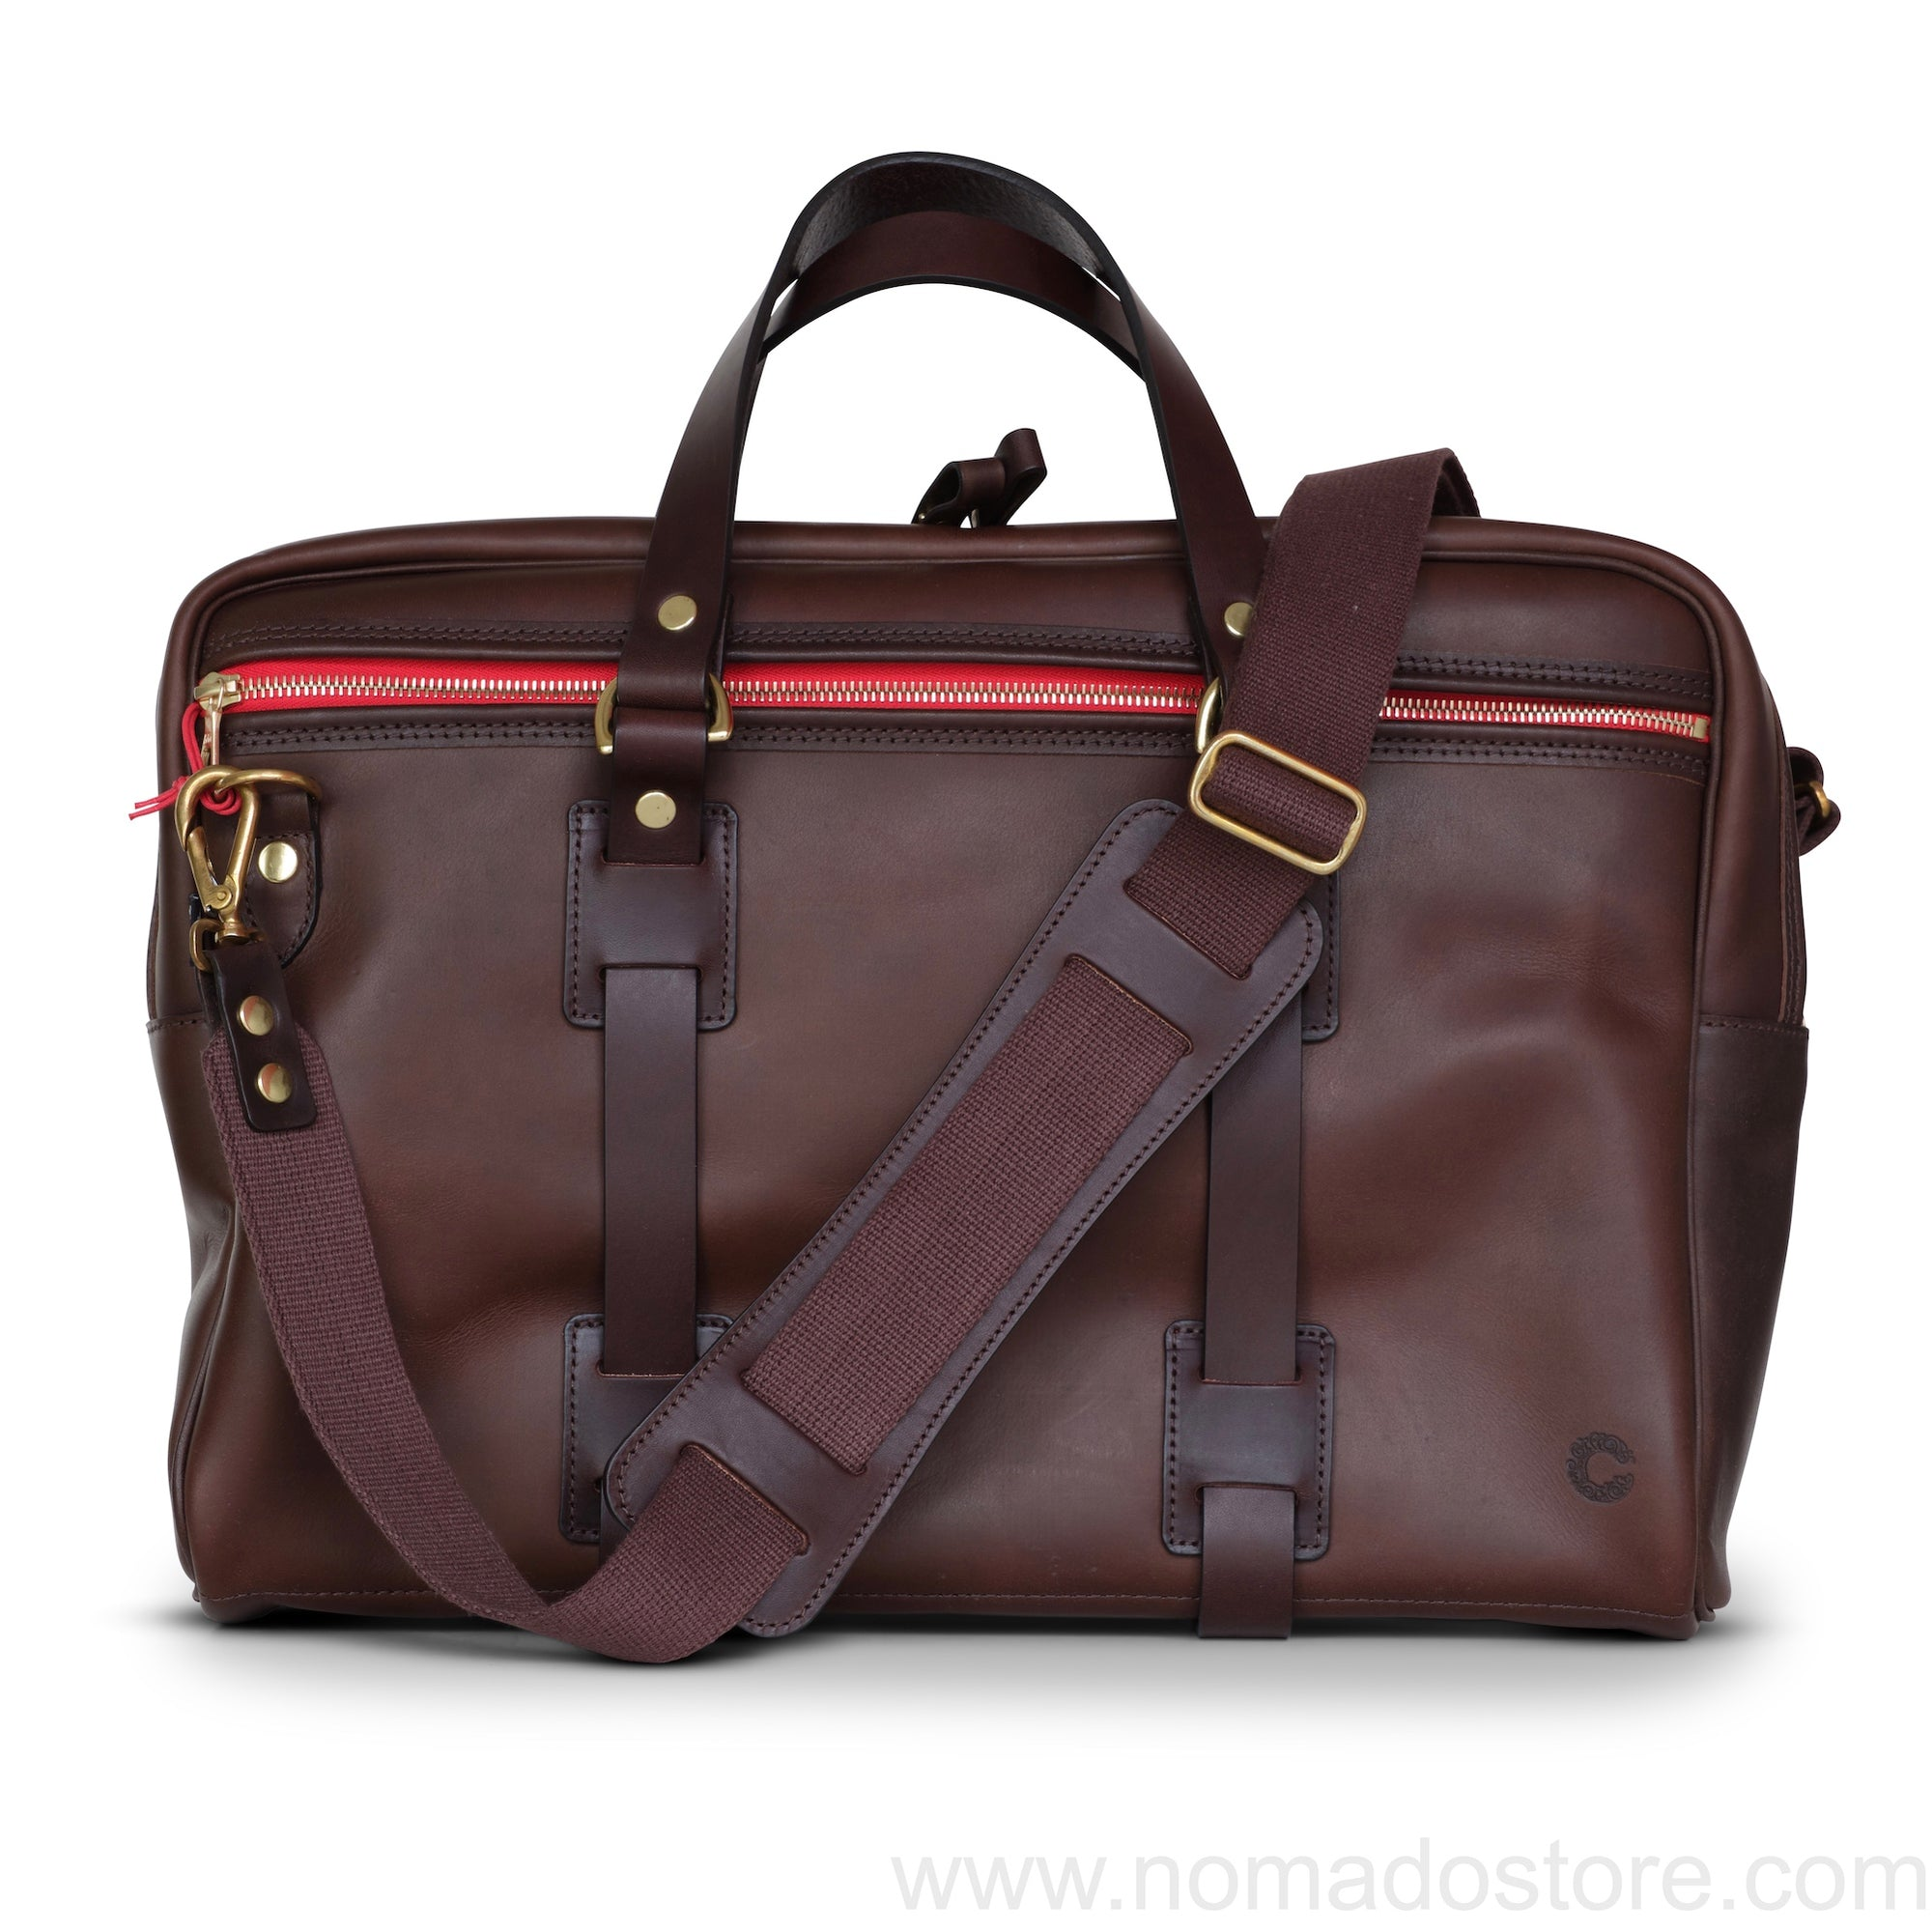 CROOTS VINTAGE LEATHER LAPTOP BAG (Dark Brown) - NOMADO Store